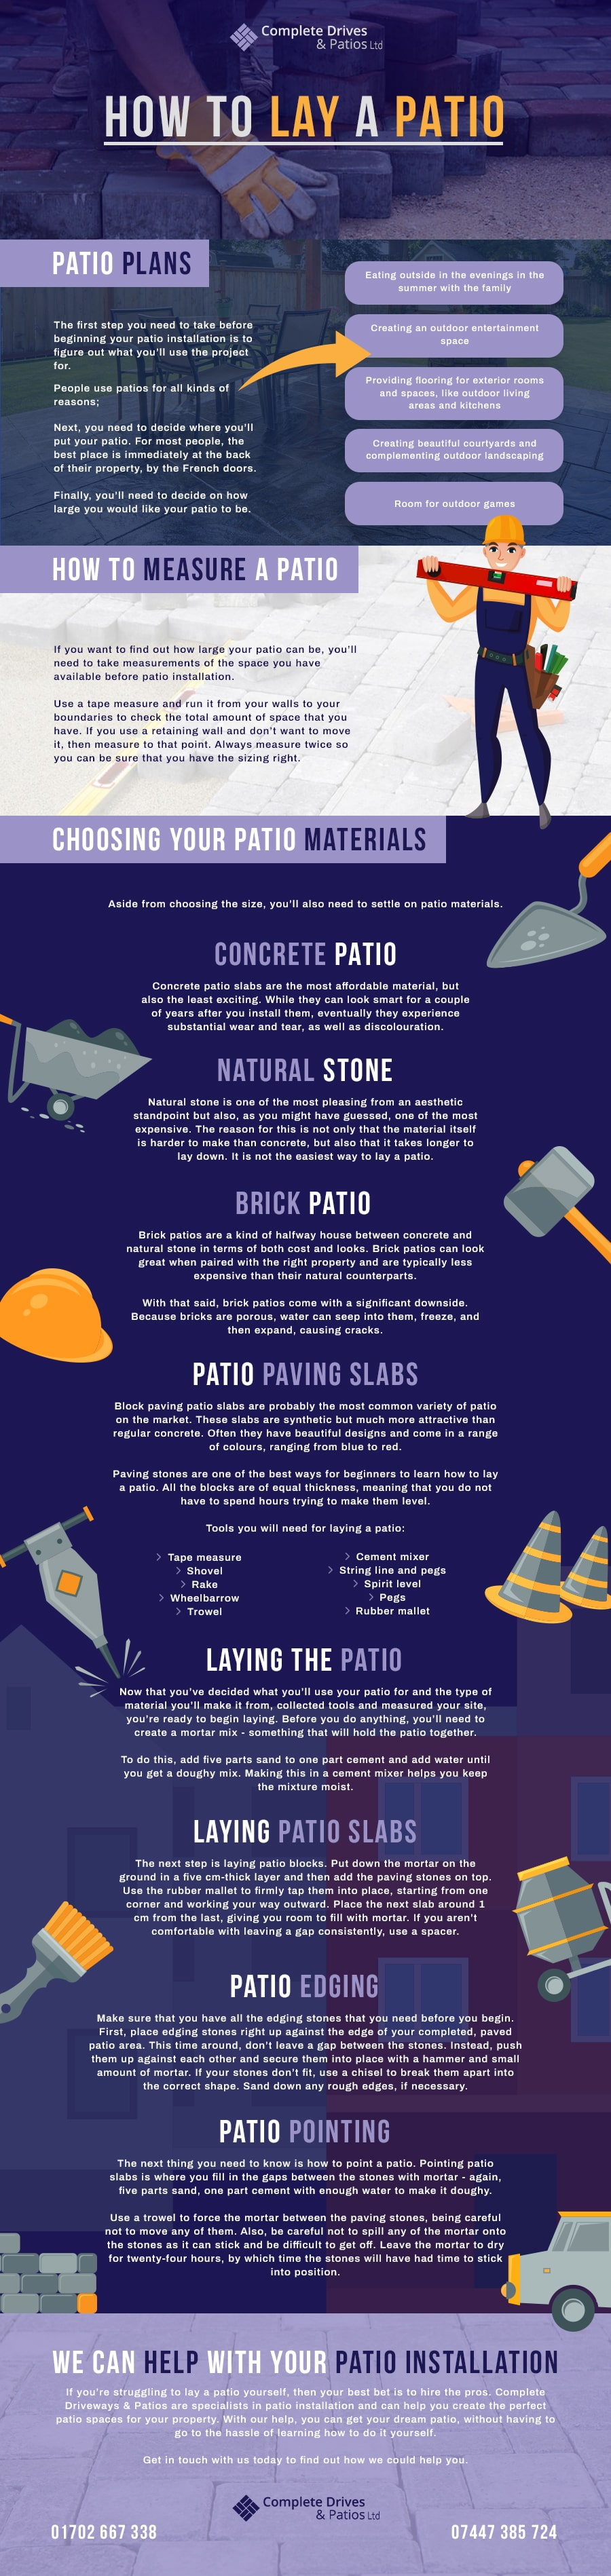 how to lay patio infographic